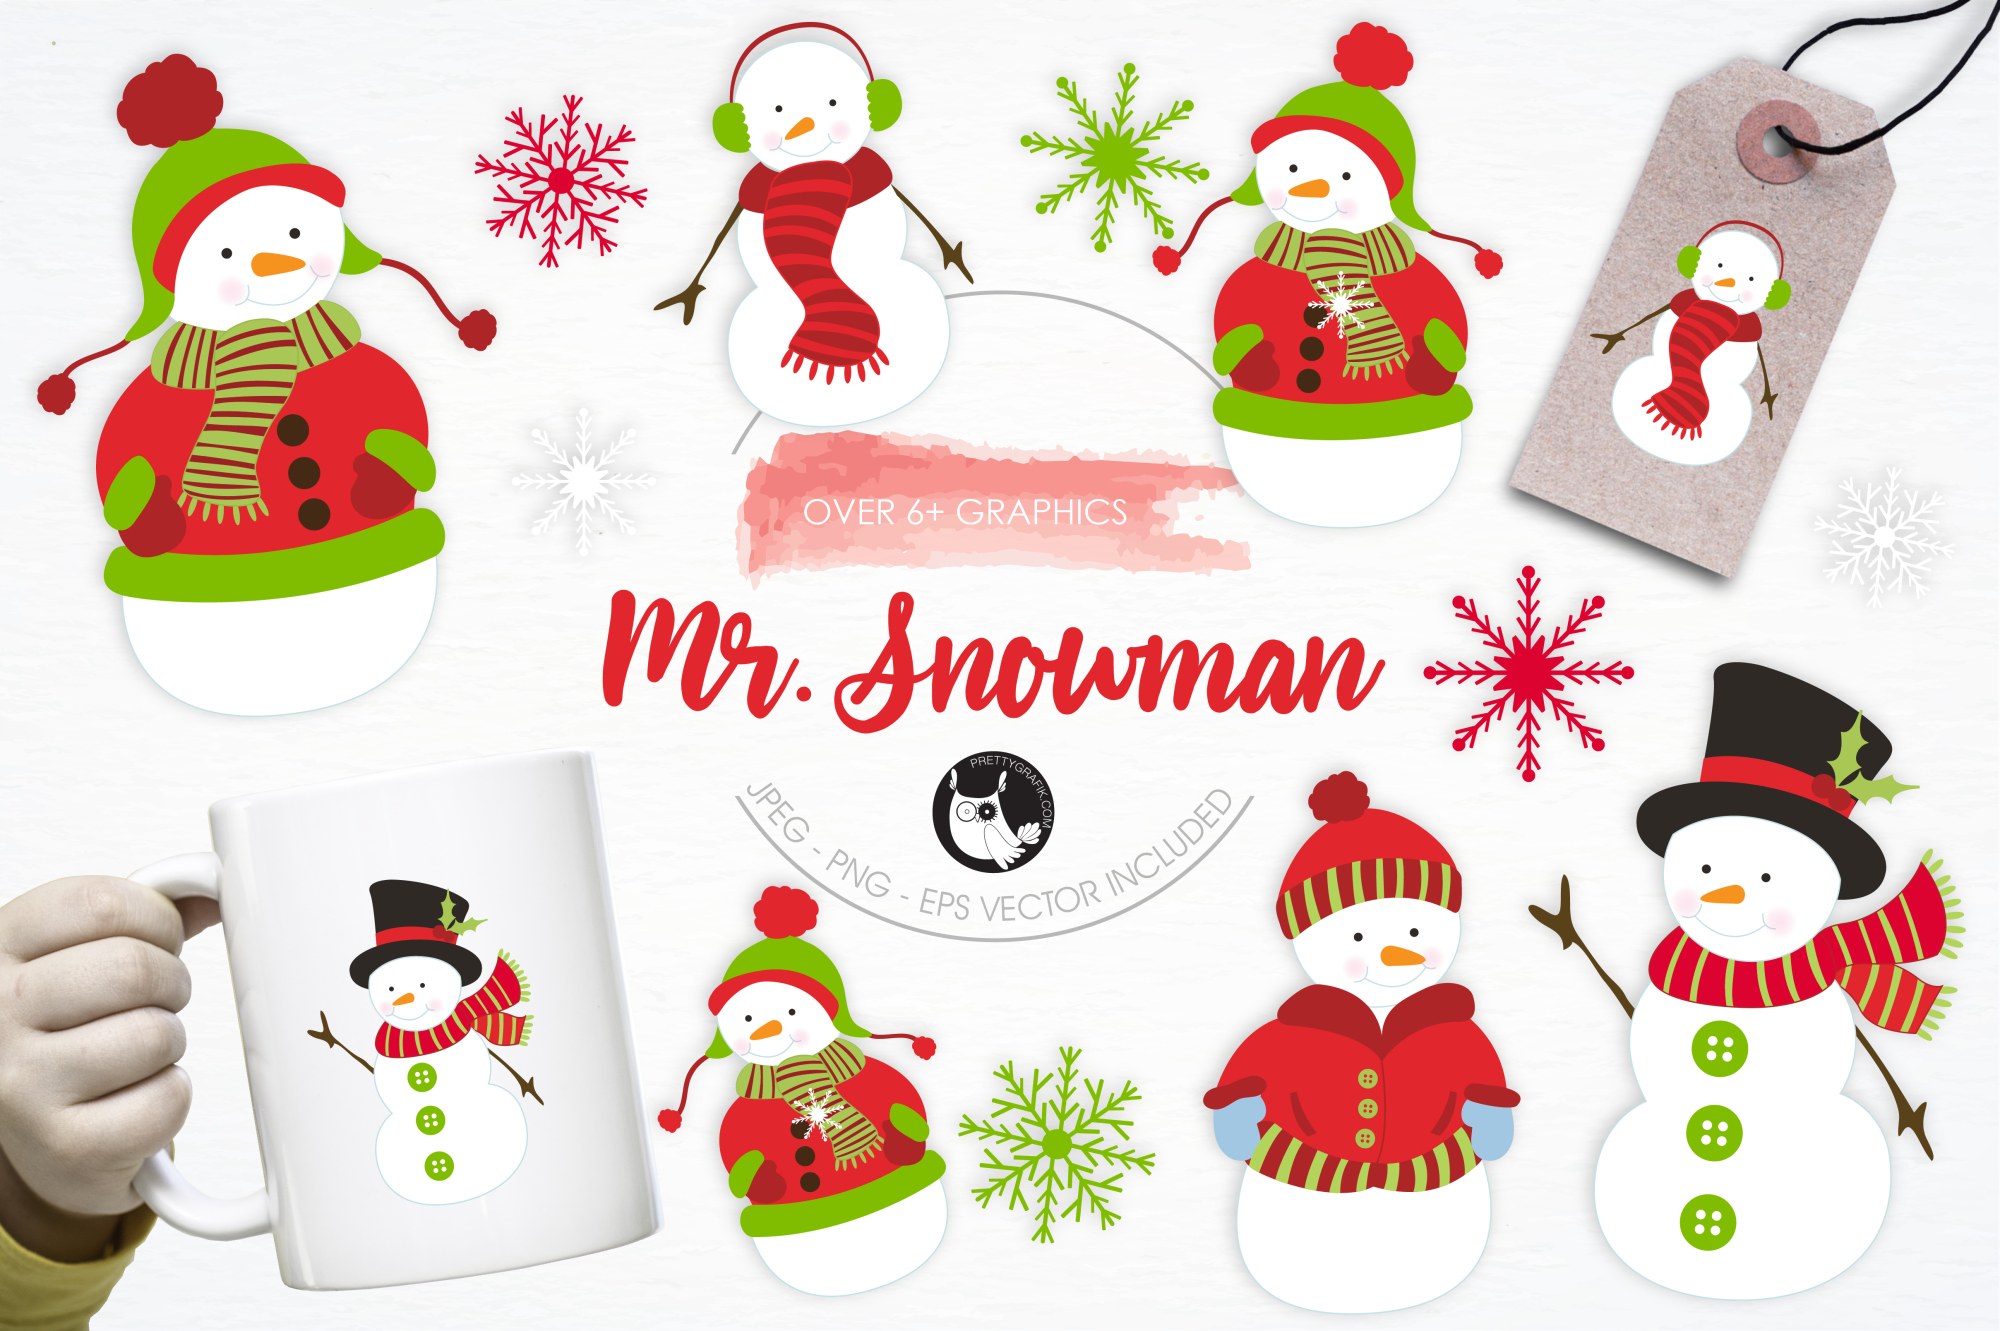 Mr. Snowman graphics and illustrations example image 1